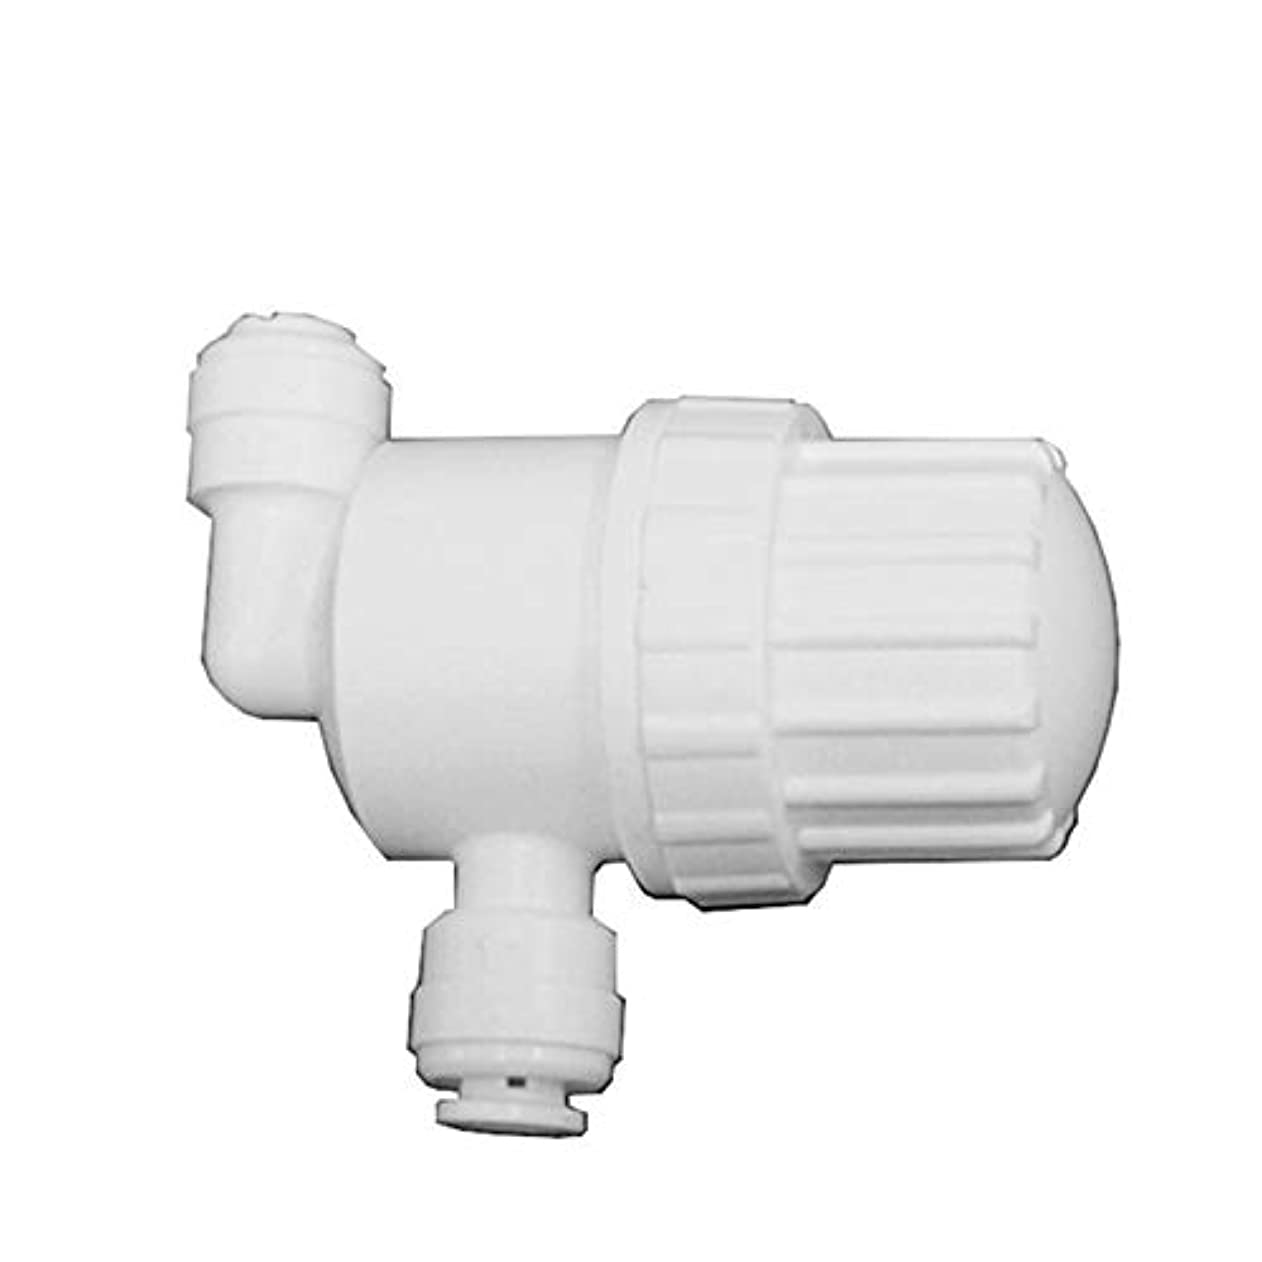 Samoda Sprayer Water - C047 Water Filter White Color to Purify for System rnhejhggwnt64434